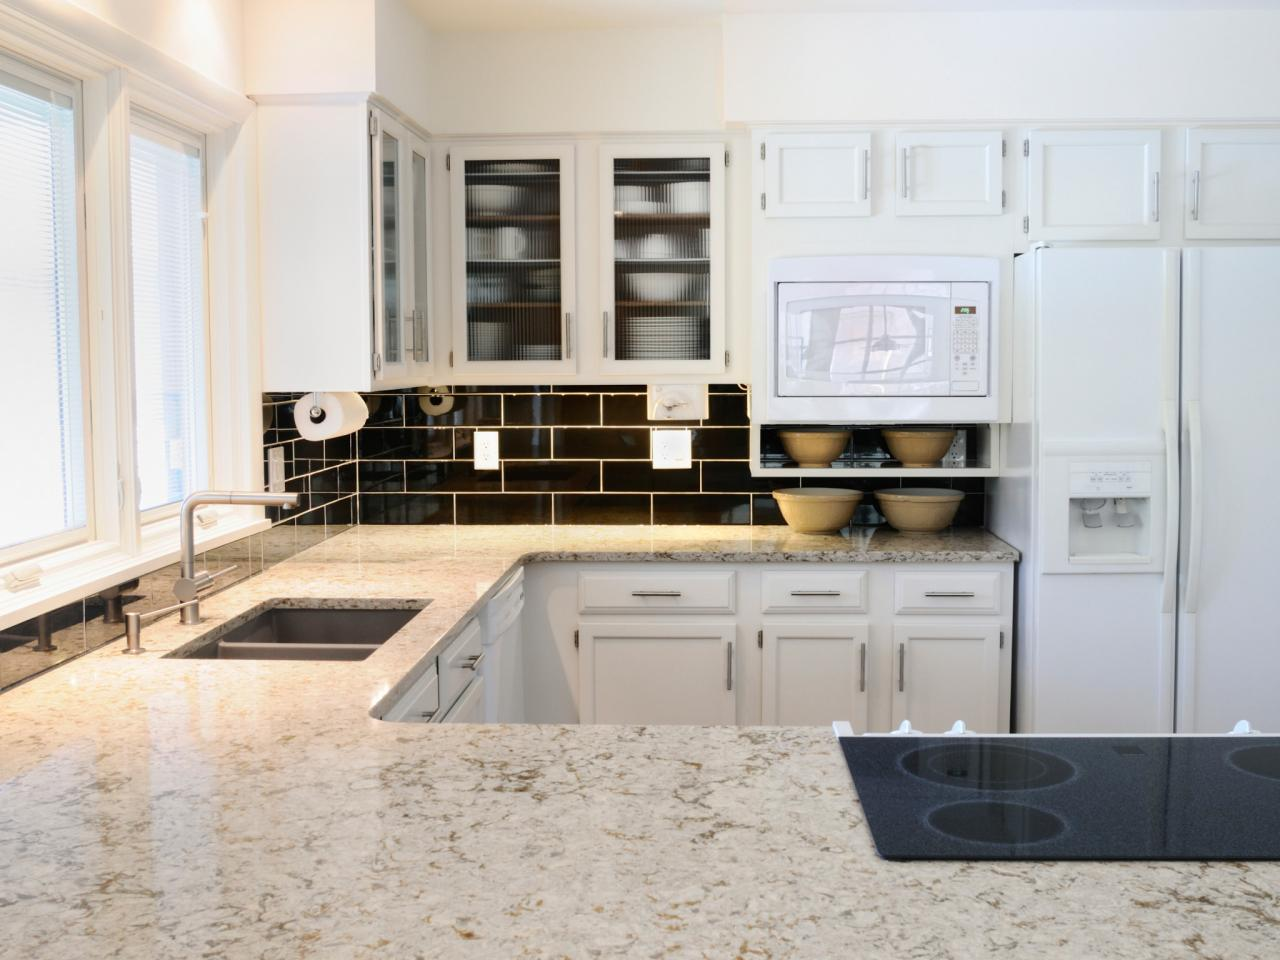 White Granite Kitchen Countertops White Granite Kitchen Countertops Pictures & Ideas From Hgtv  Hgtv